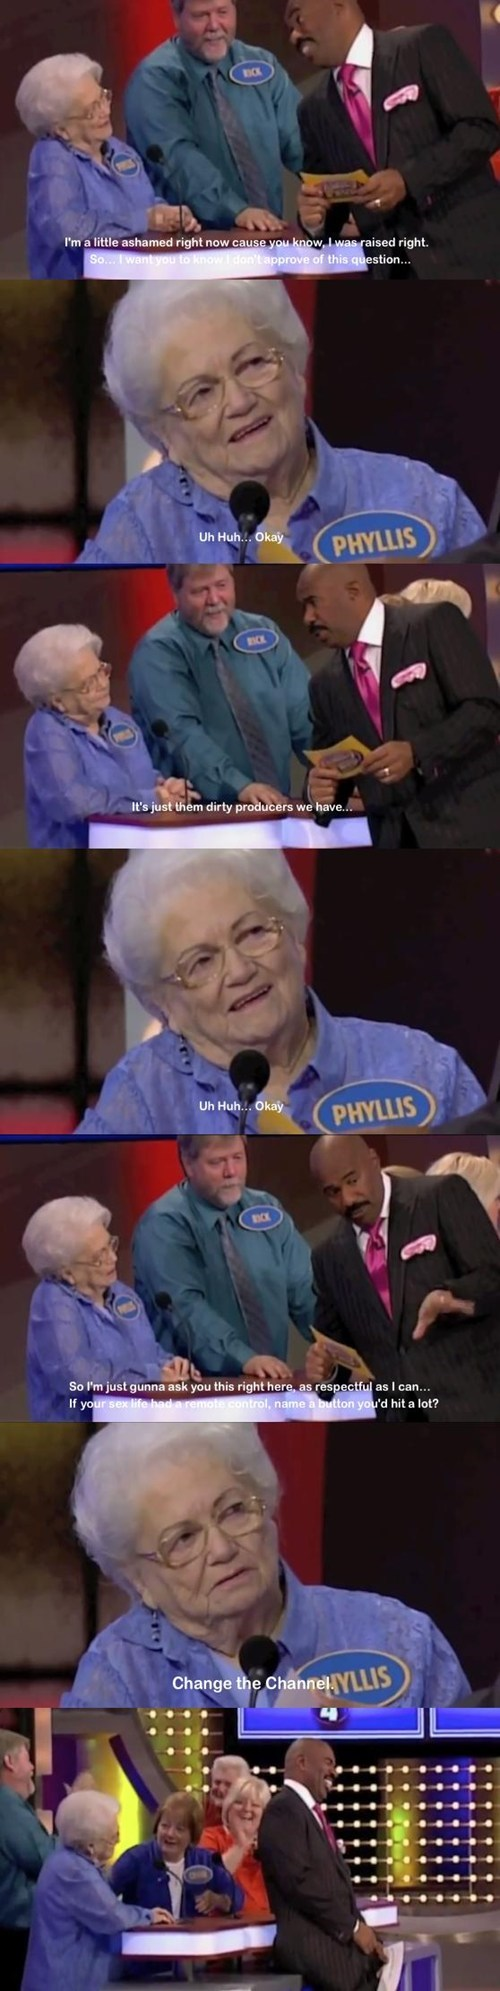 game show seniors old people rock cute - 7119627776